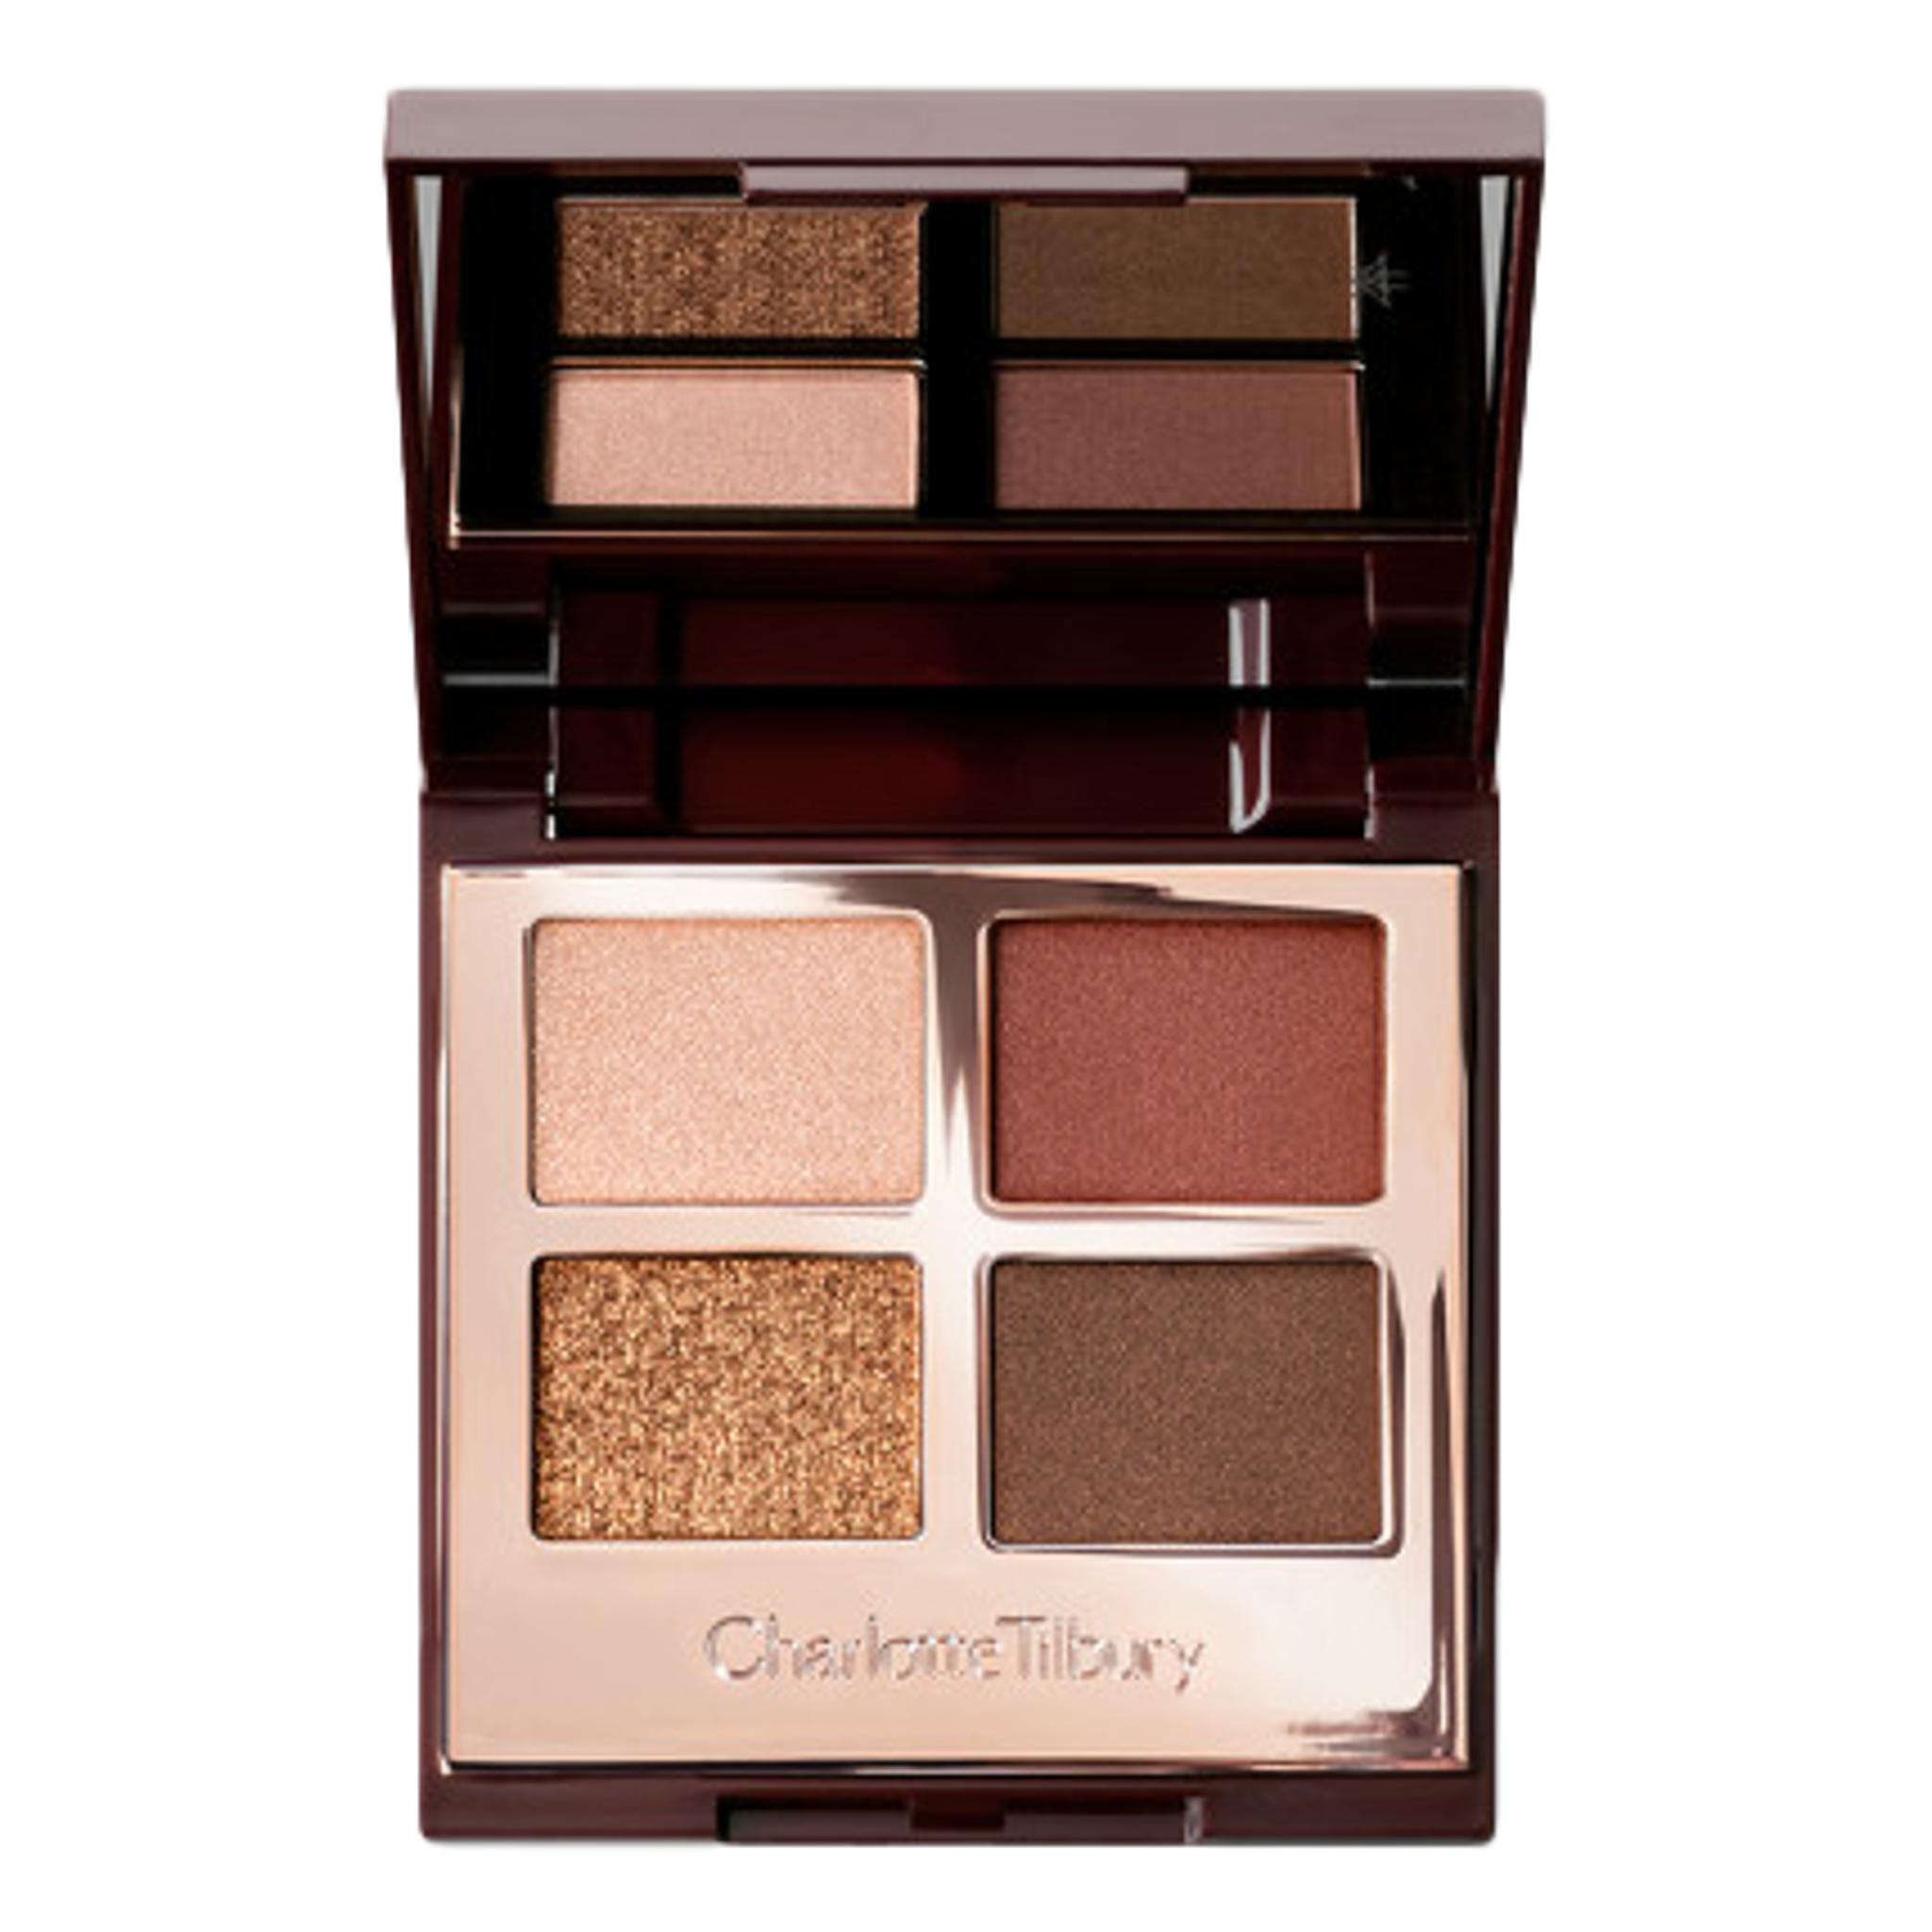 Charlotte Tilbury Luxury Eyeshadow Palette - The Bella Sofia, eyeshadow palette, London Loves Beauty